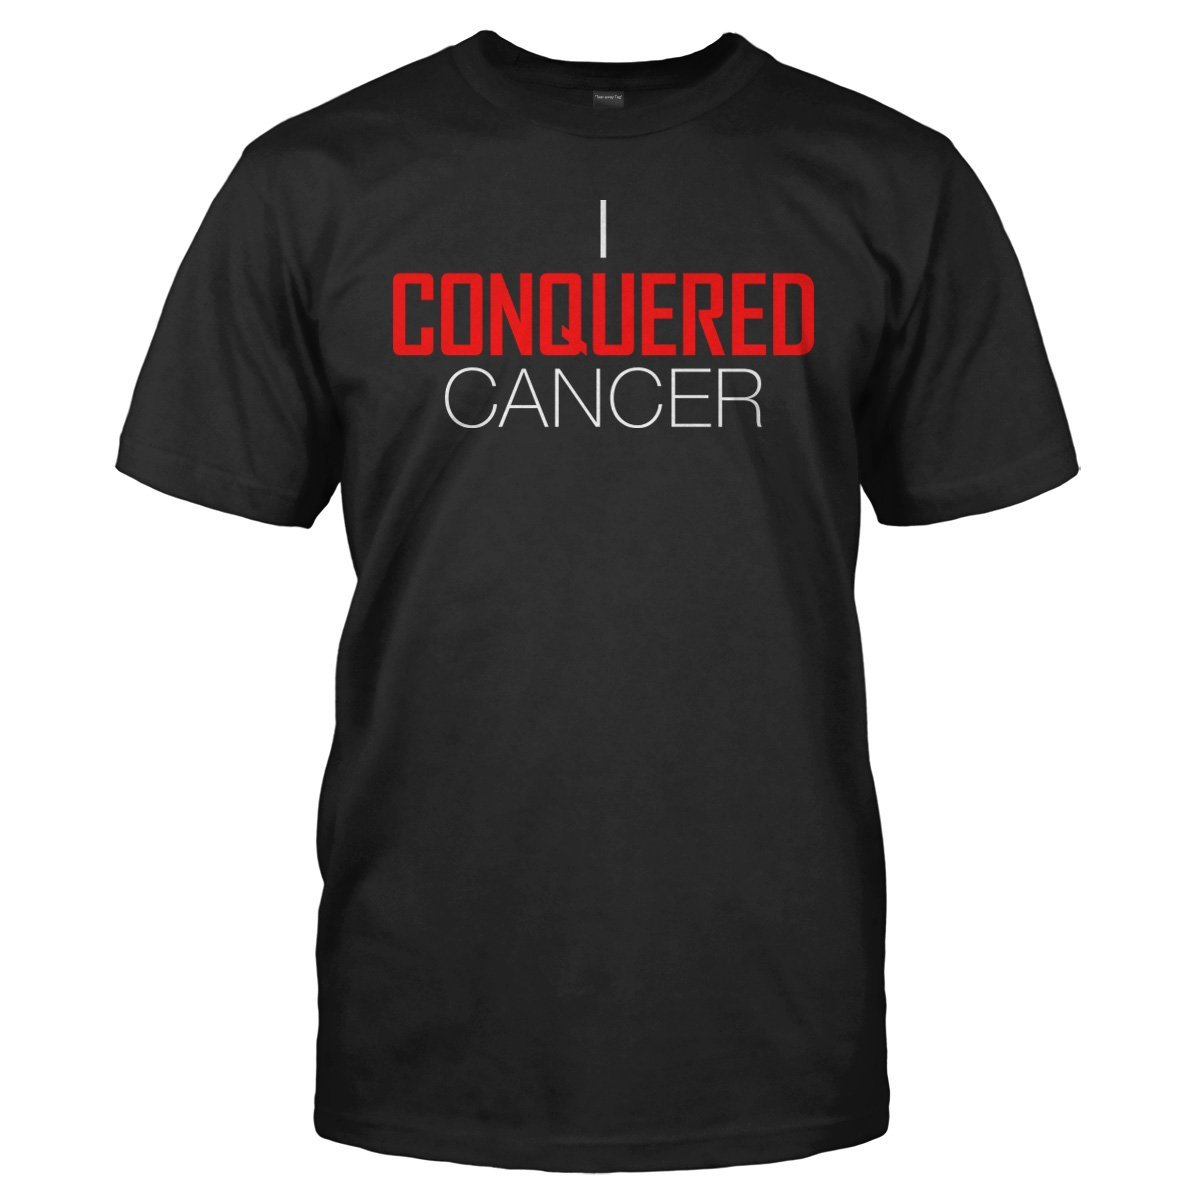 I Conquered Cancer - T Shirt